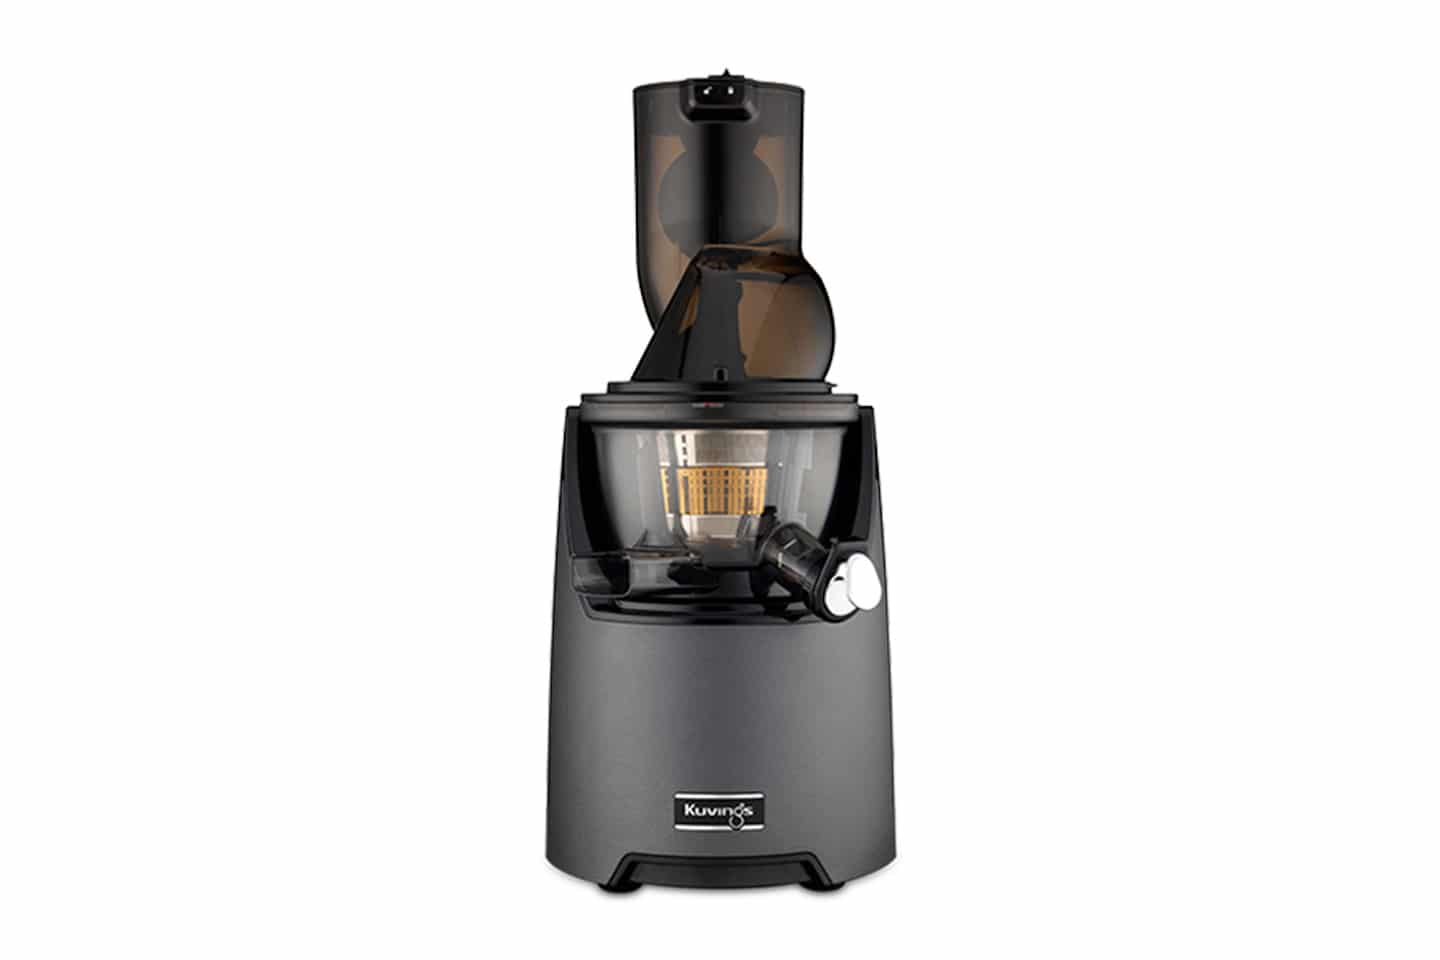 Kuvings Evolution Cold Press Juicer EVO820 Review | Juicing Journal